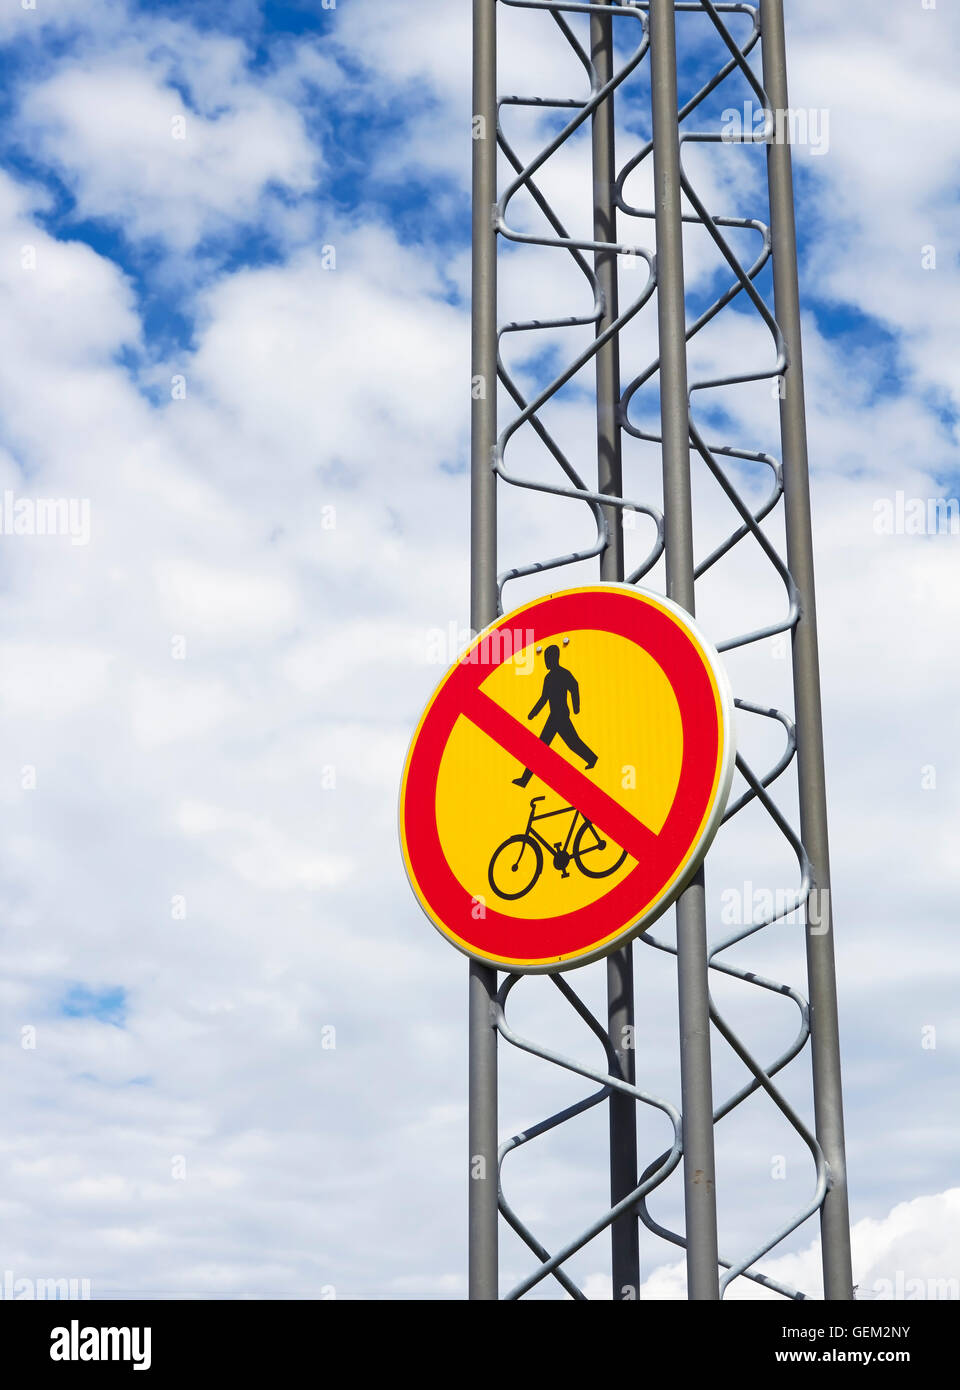 No entry for pedestrians, cycles and mopeds traffic sign, Finland - Stock Image